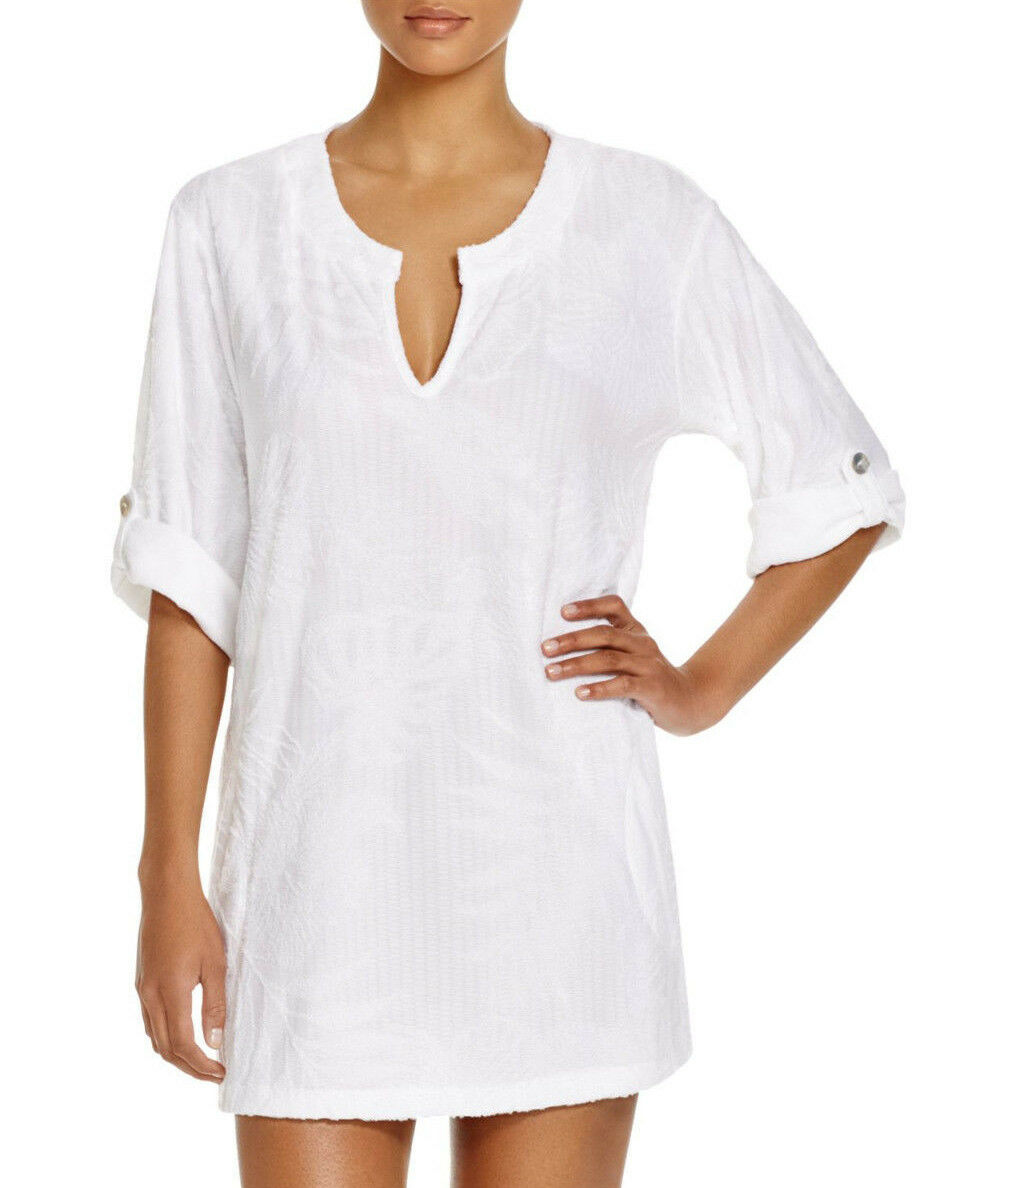 NEW J Valdi Tropical Terry Tunic Swim Cover Up White size S Small